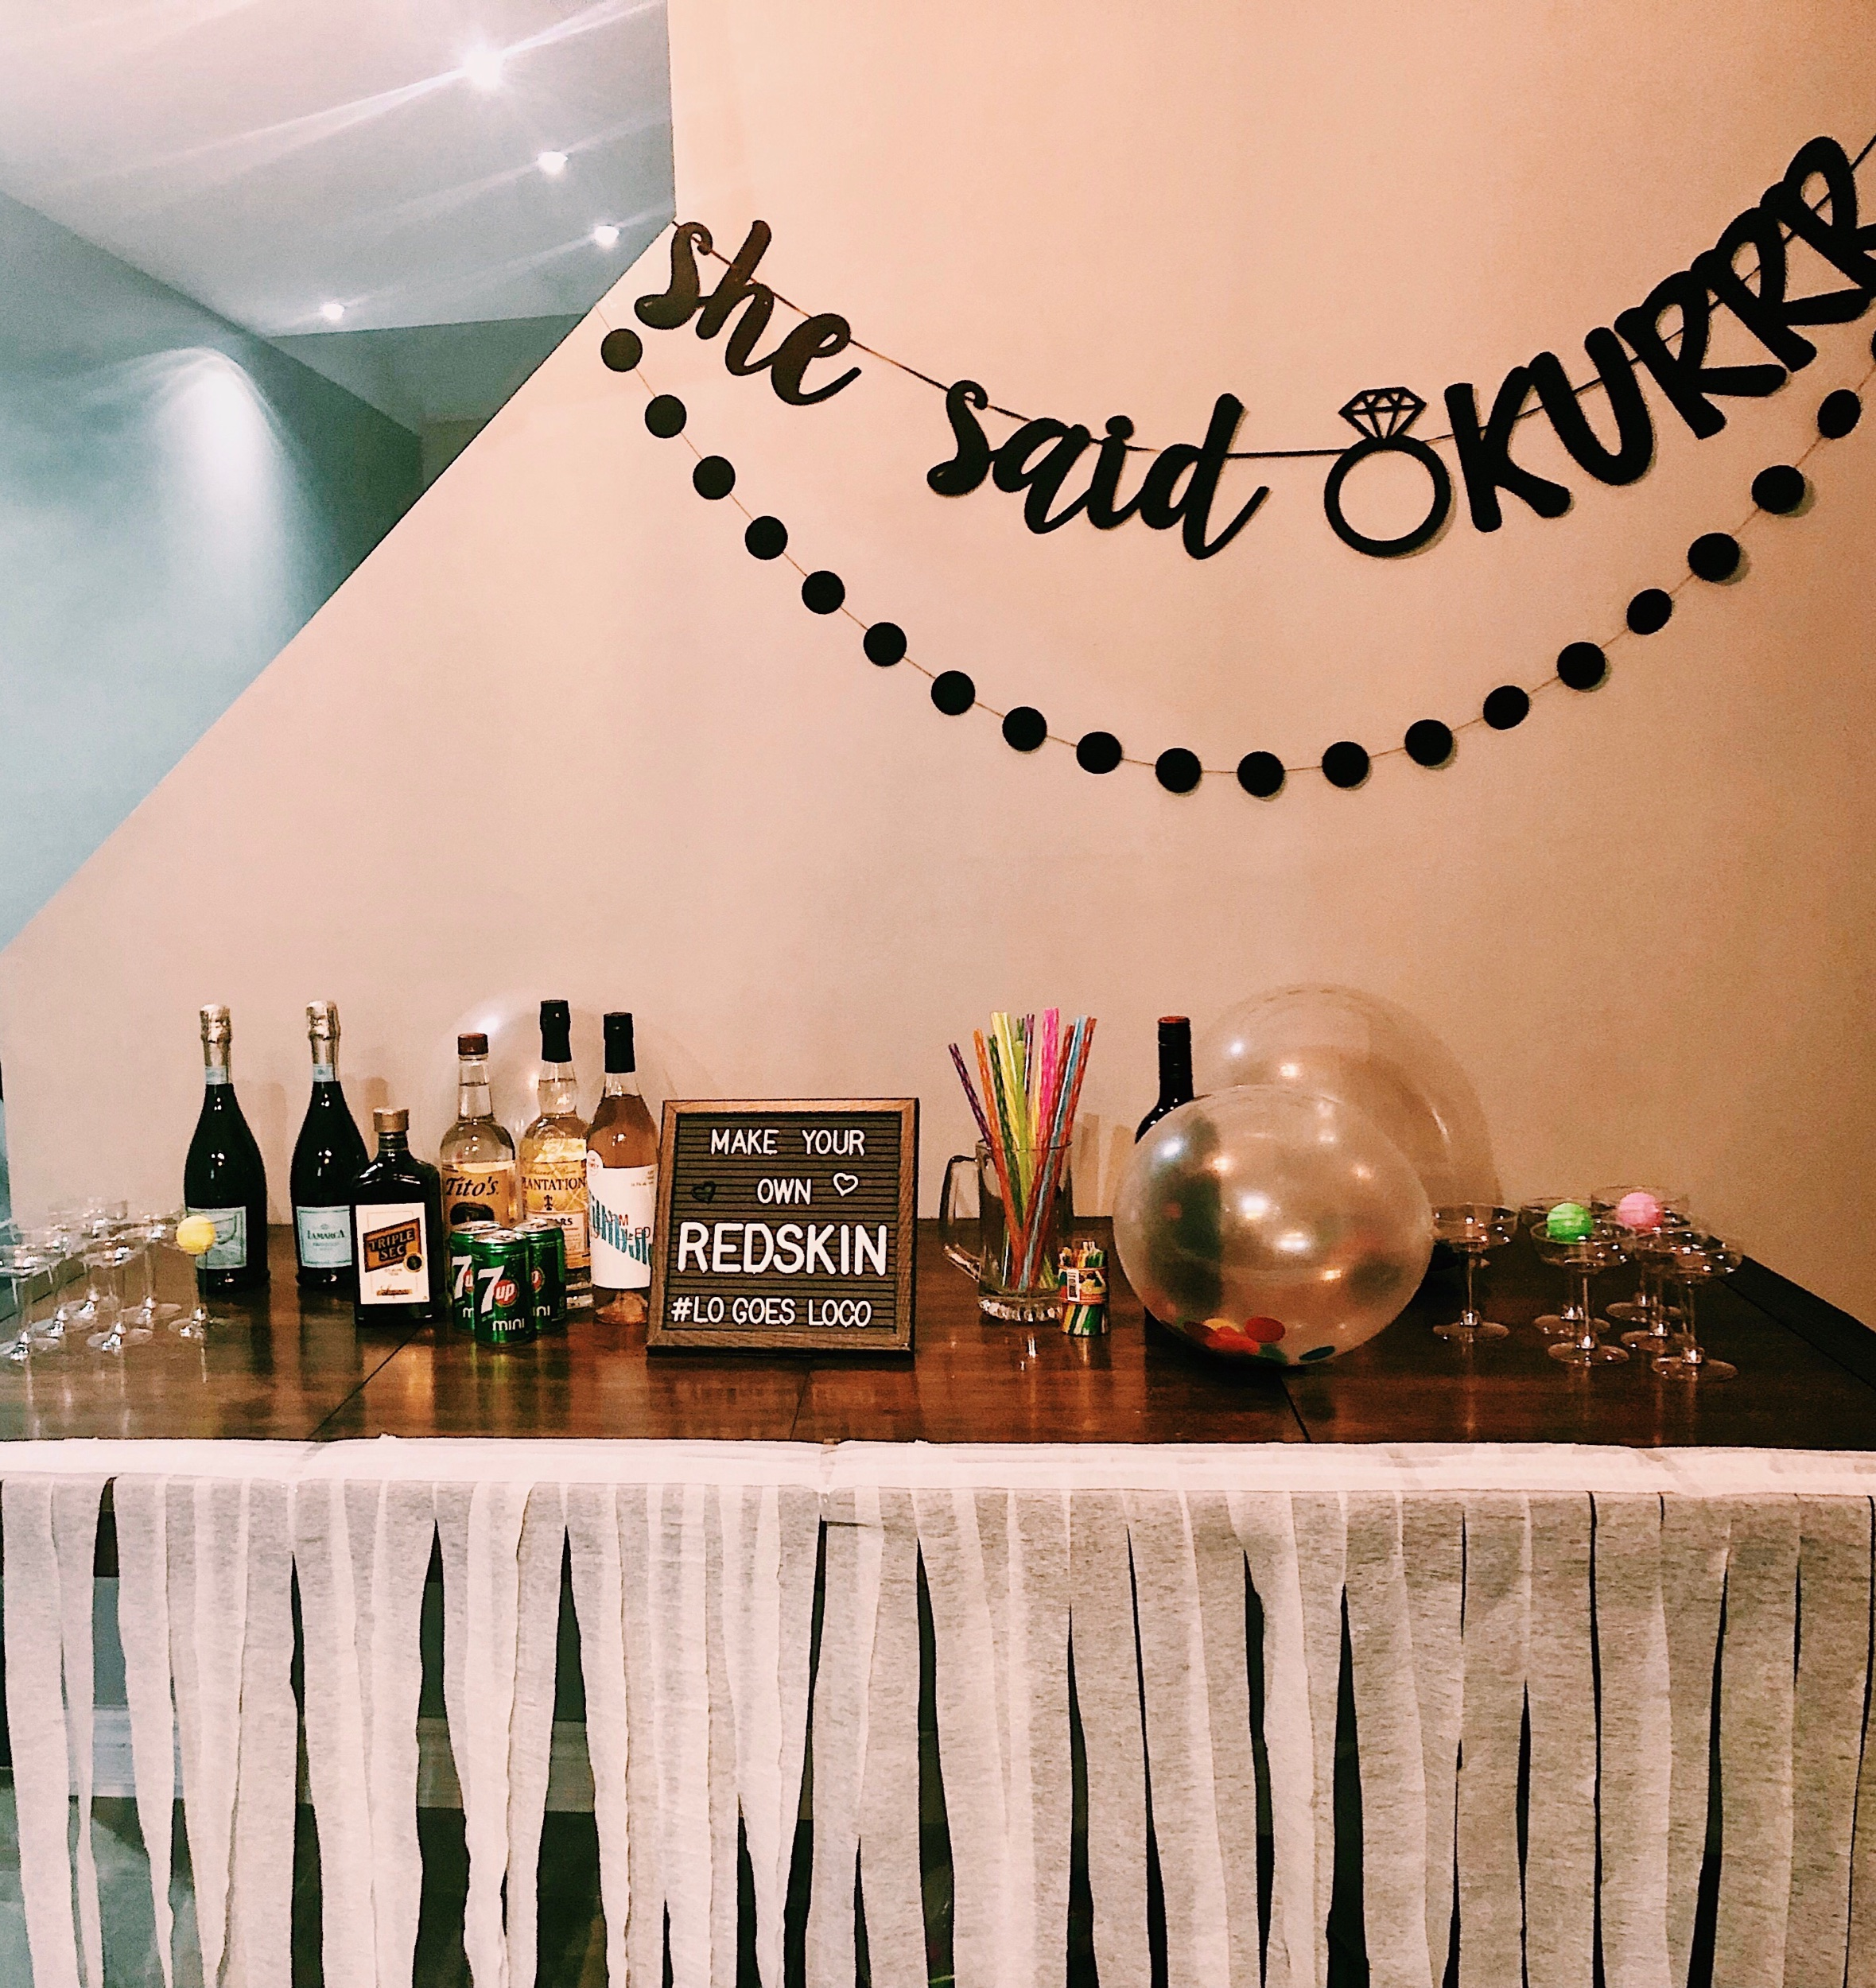 Prosecco pong and a Cardi B engagement banner!